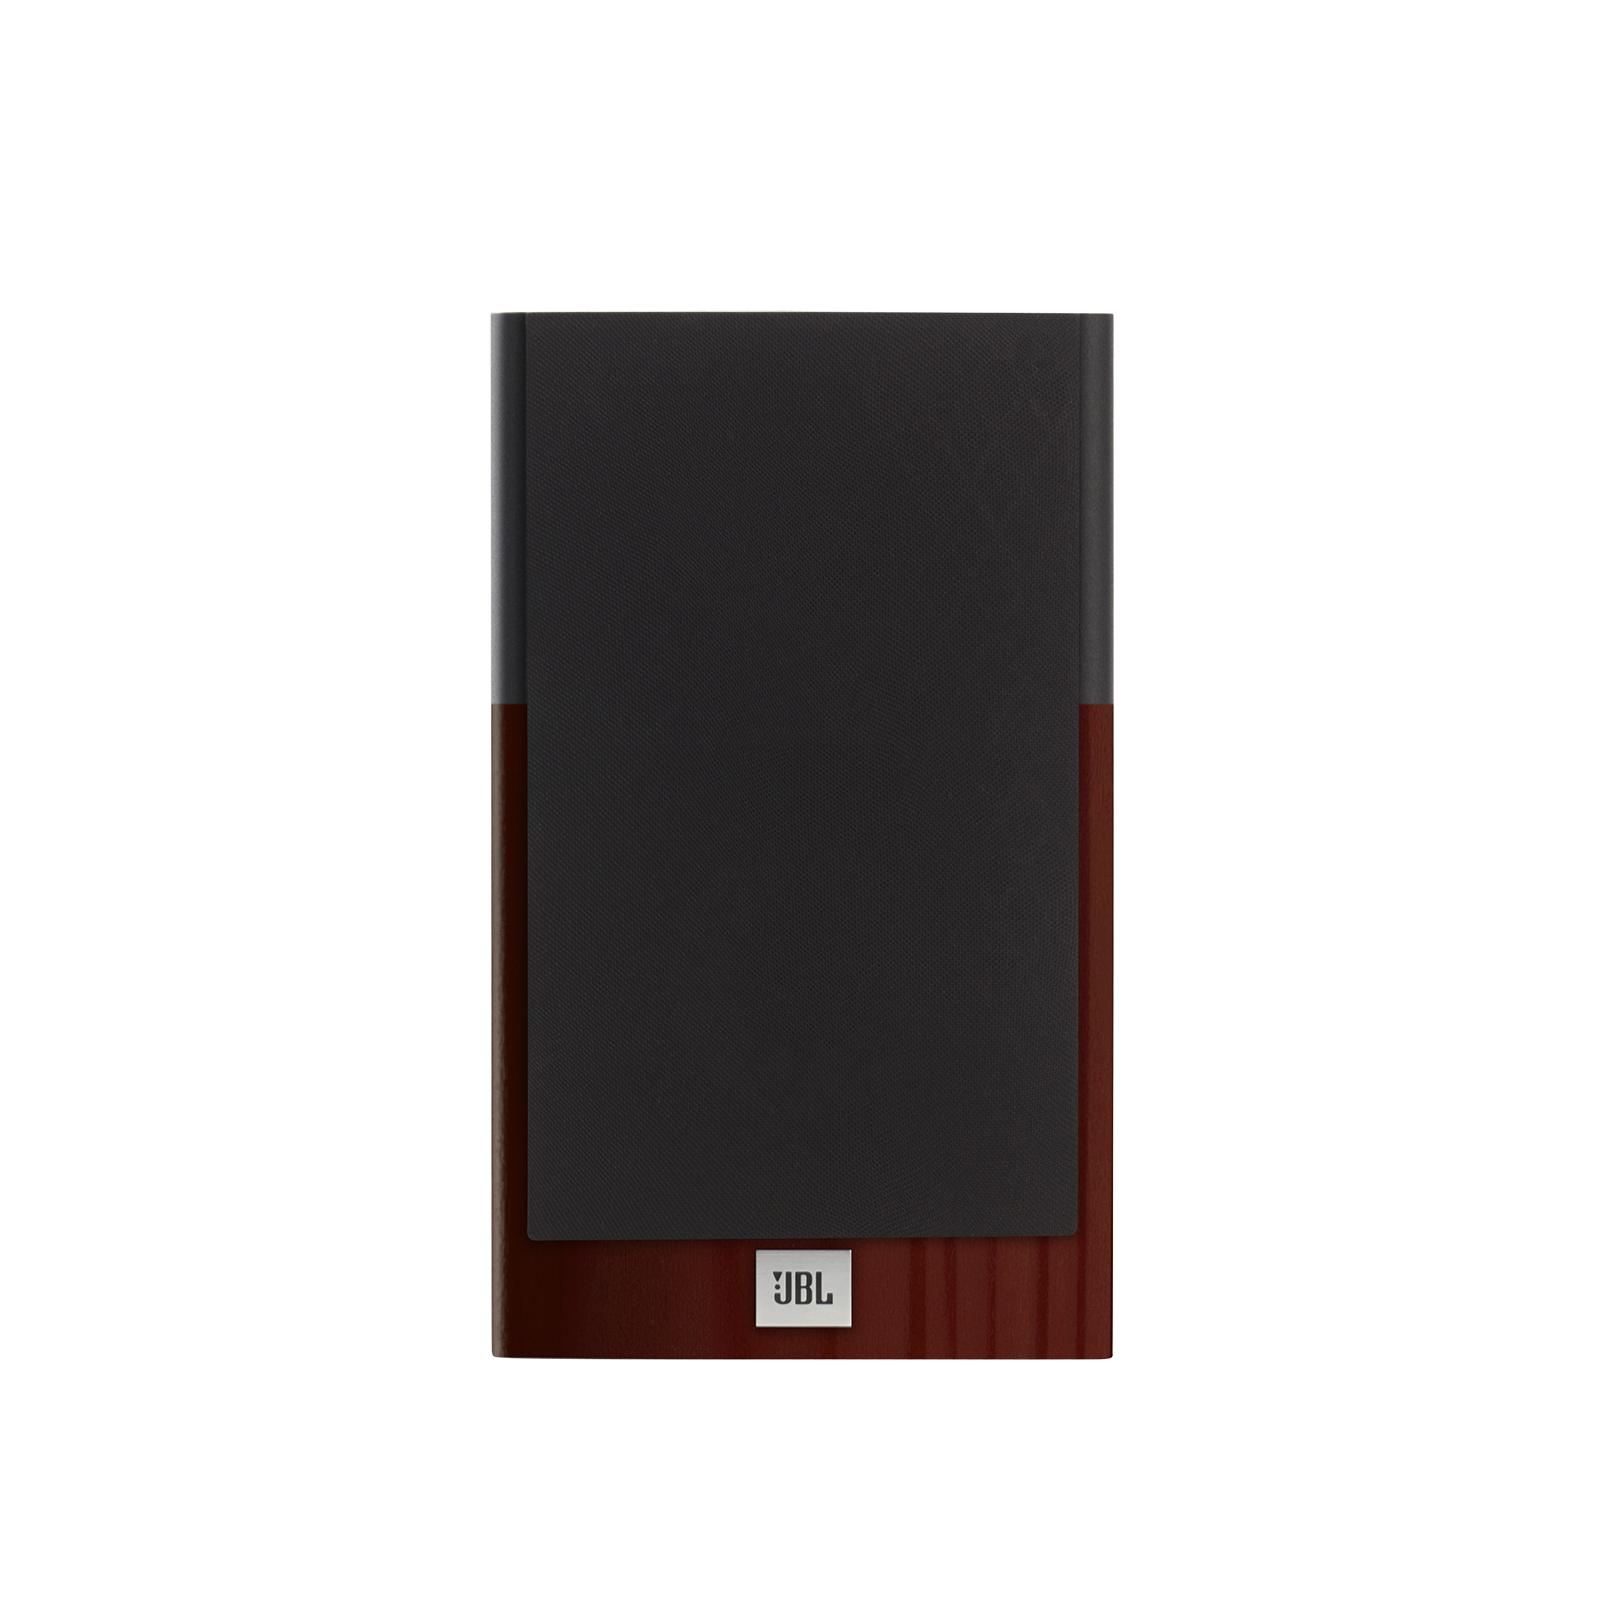 JBL Stage A120 - Wood - Home Audio Loudspeaker System - Front